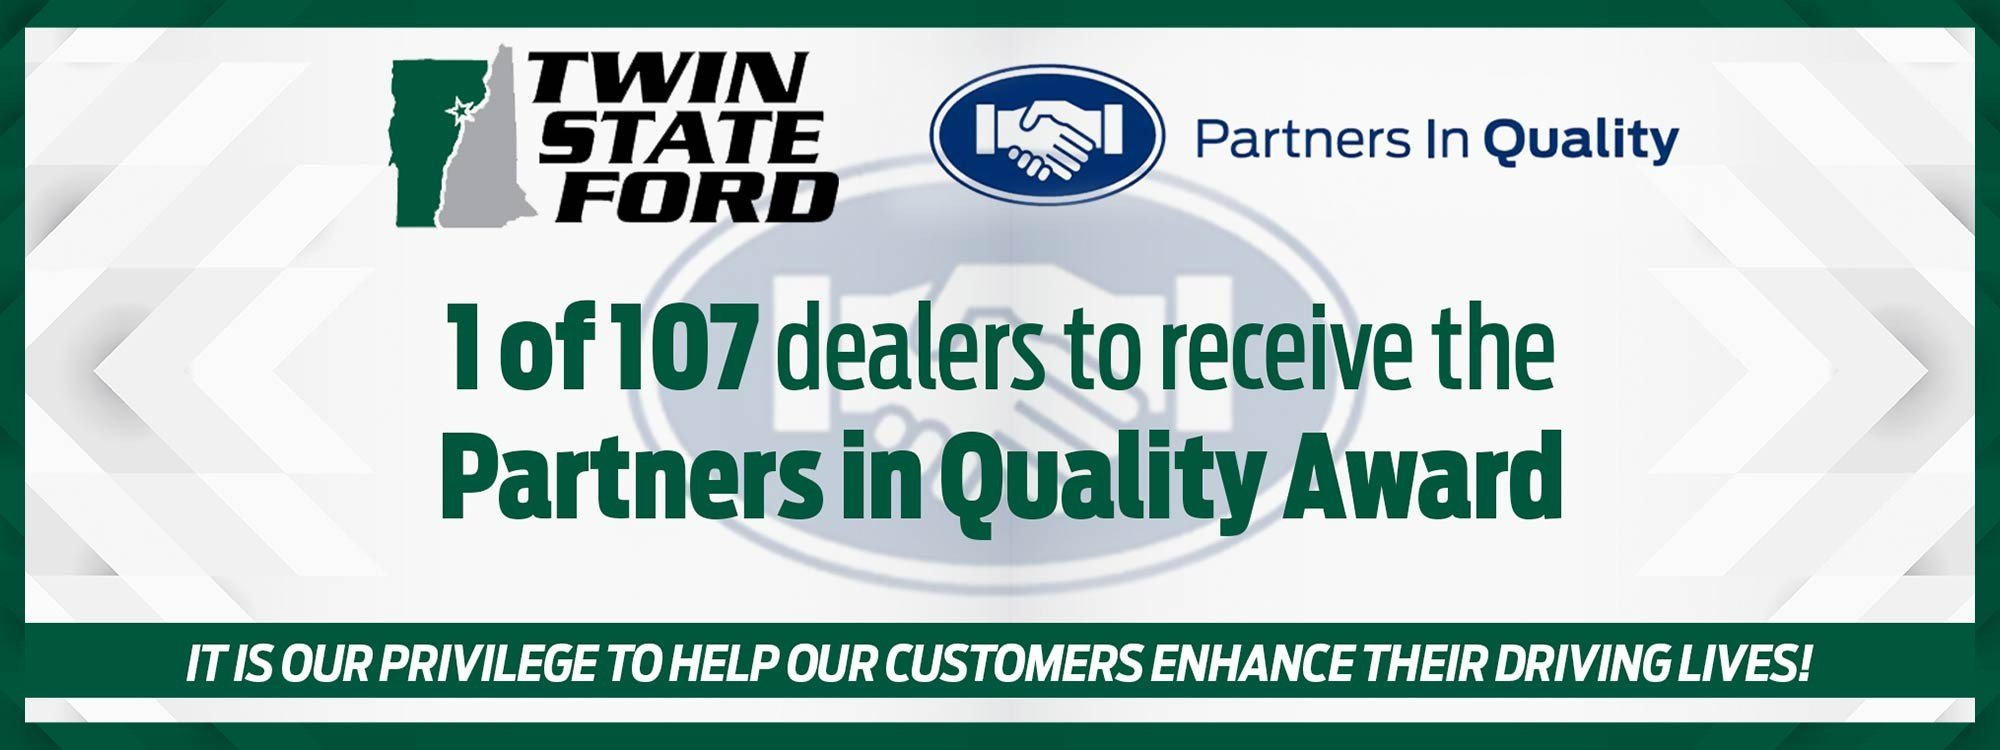 Ford Partners in Quality award